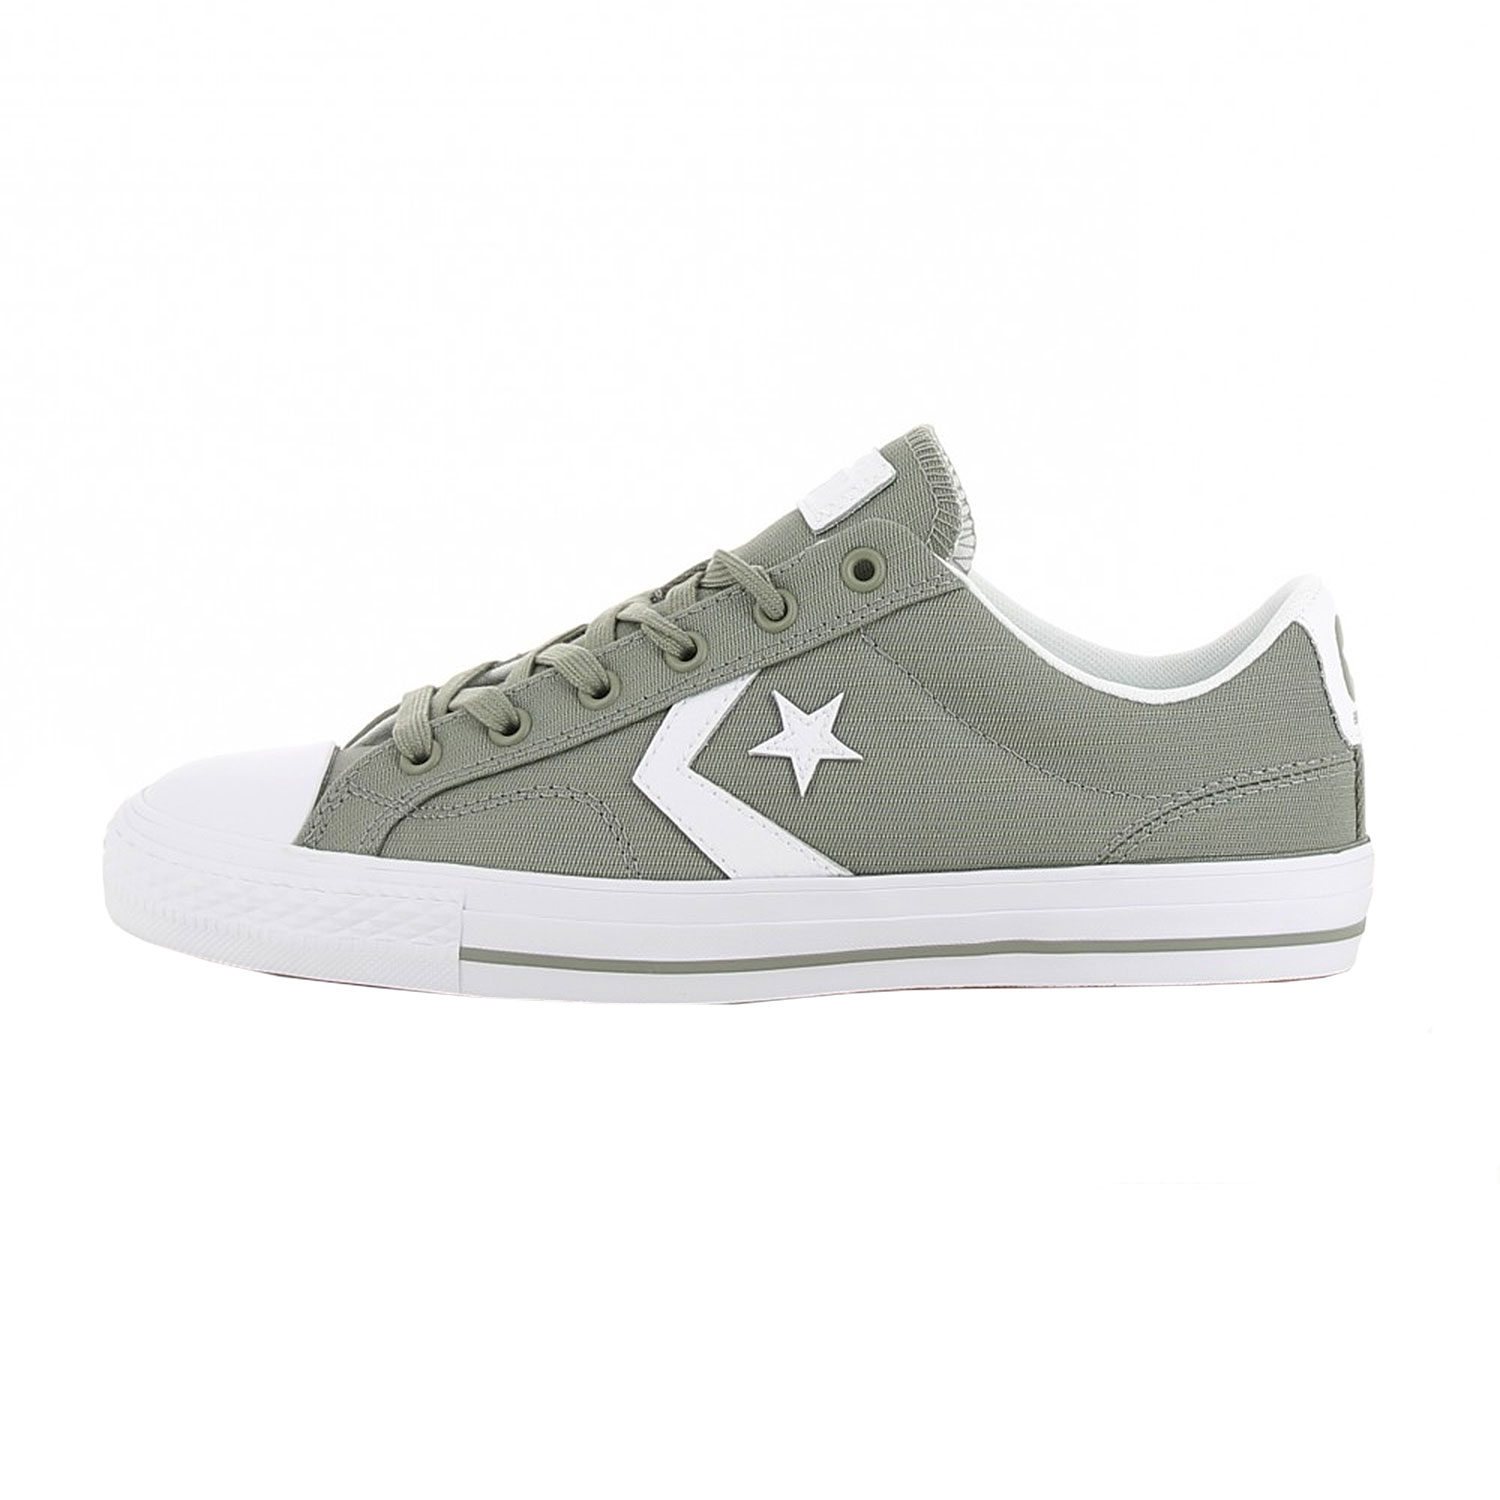 41 EU Cl Leather 40 Converse Star Player Ox 161072c